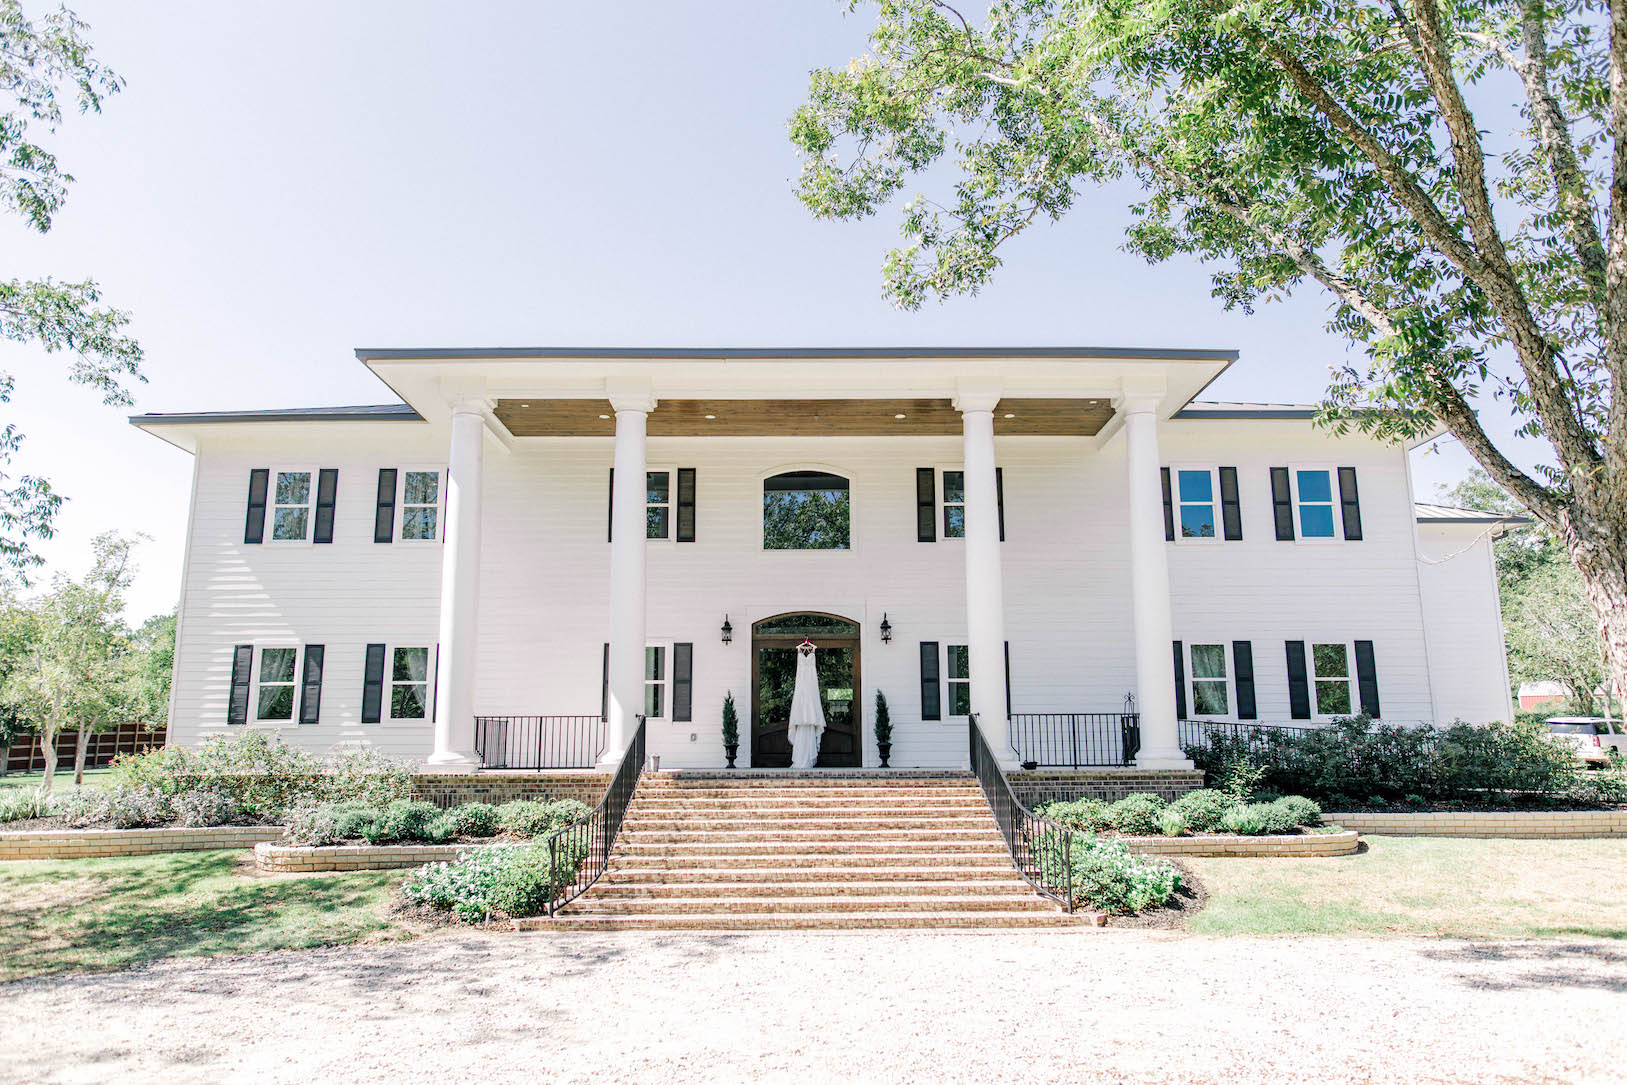 Houston Wedding Venue - The Estates at Pecan Park